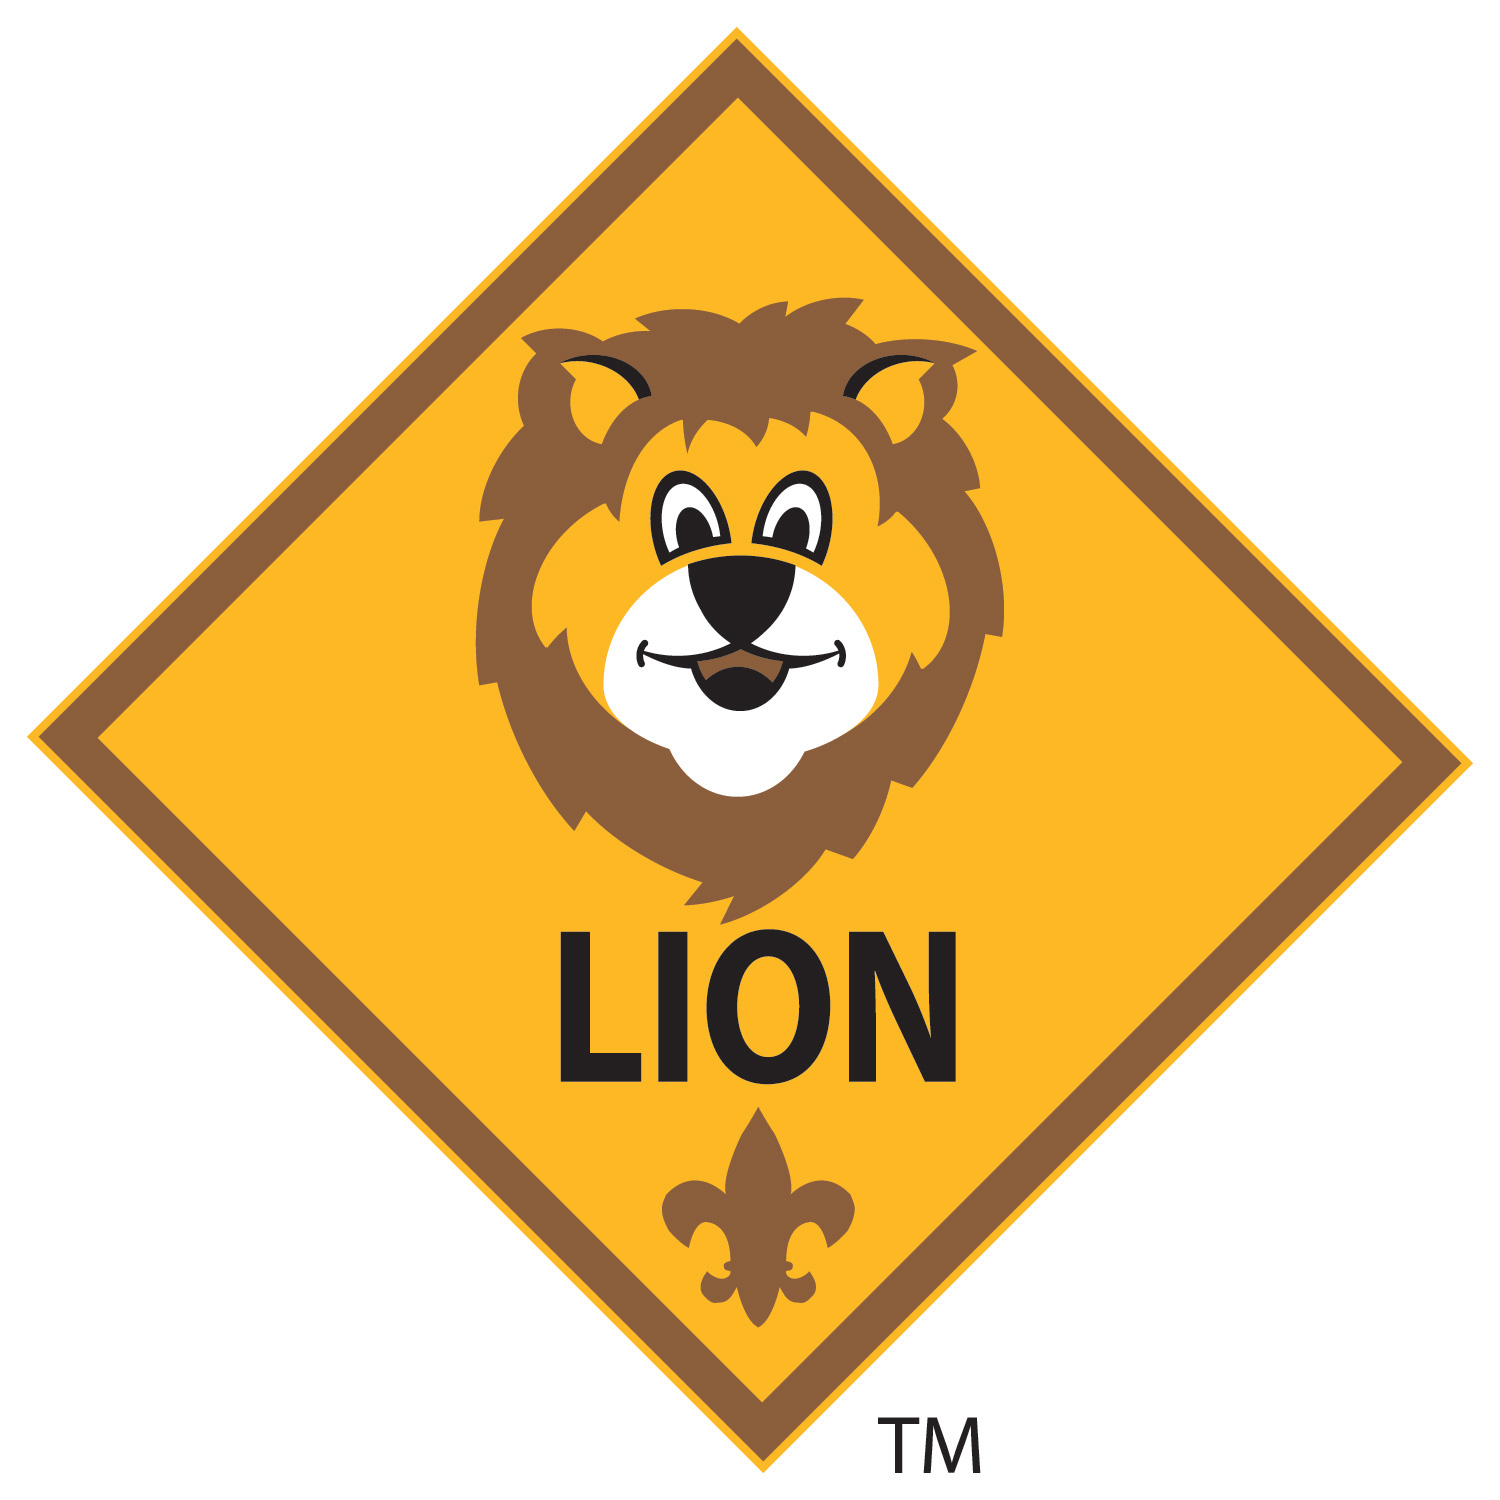 lions  a new pilot program for kindergarten boys pinewood derby clip art black and white pinewood derby clip art black and white